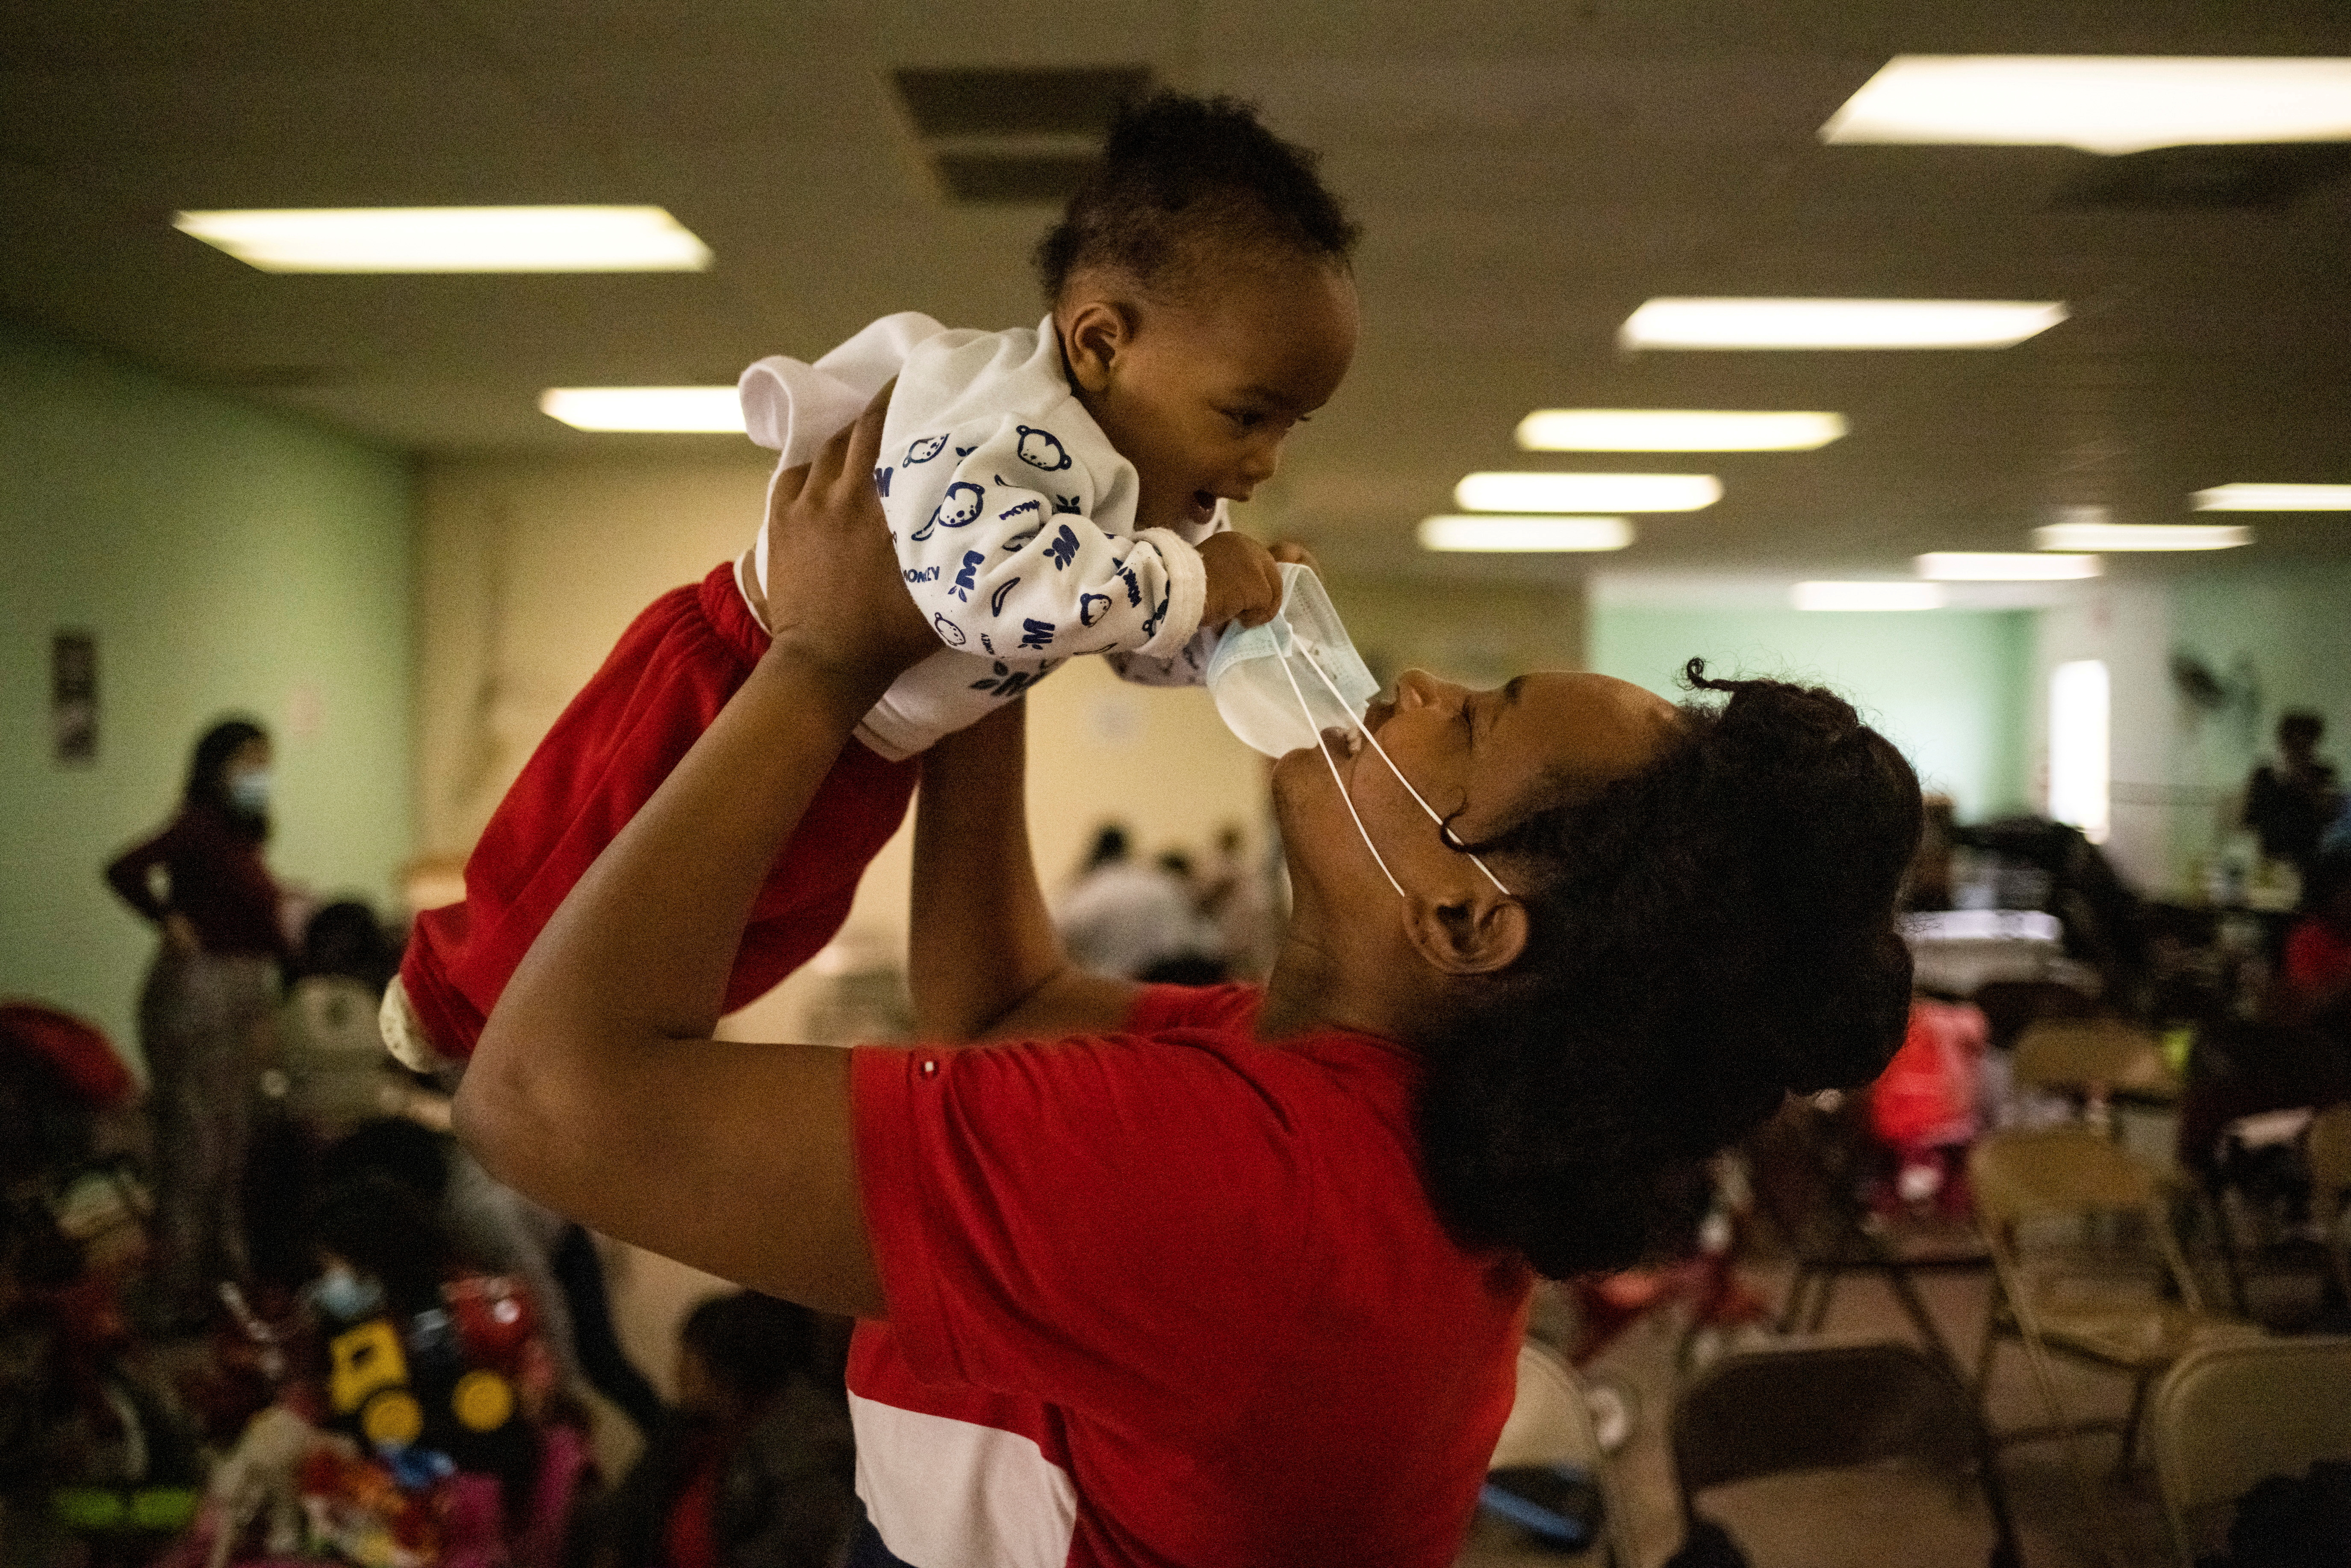 Ley Daxa, a six-month-old migrant boy from Haiti, is lifted into the air by his mother Nadia at the Val Verde Border Humanitarian Coalition after being released from U.S. Customs and Border Protection in Del Rio, Texas, U.S., March 21, 2021. Picture taken on March 21, 2021.   REUTERS/Adrees Latif